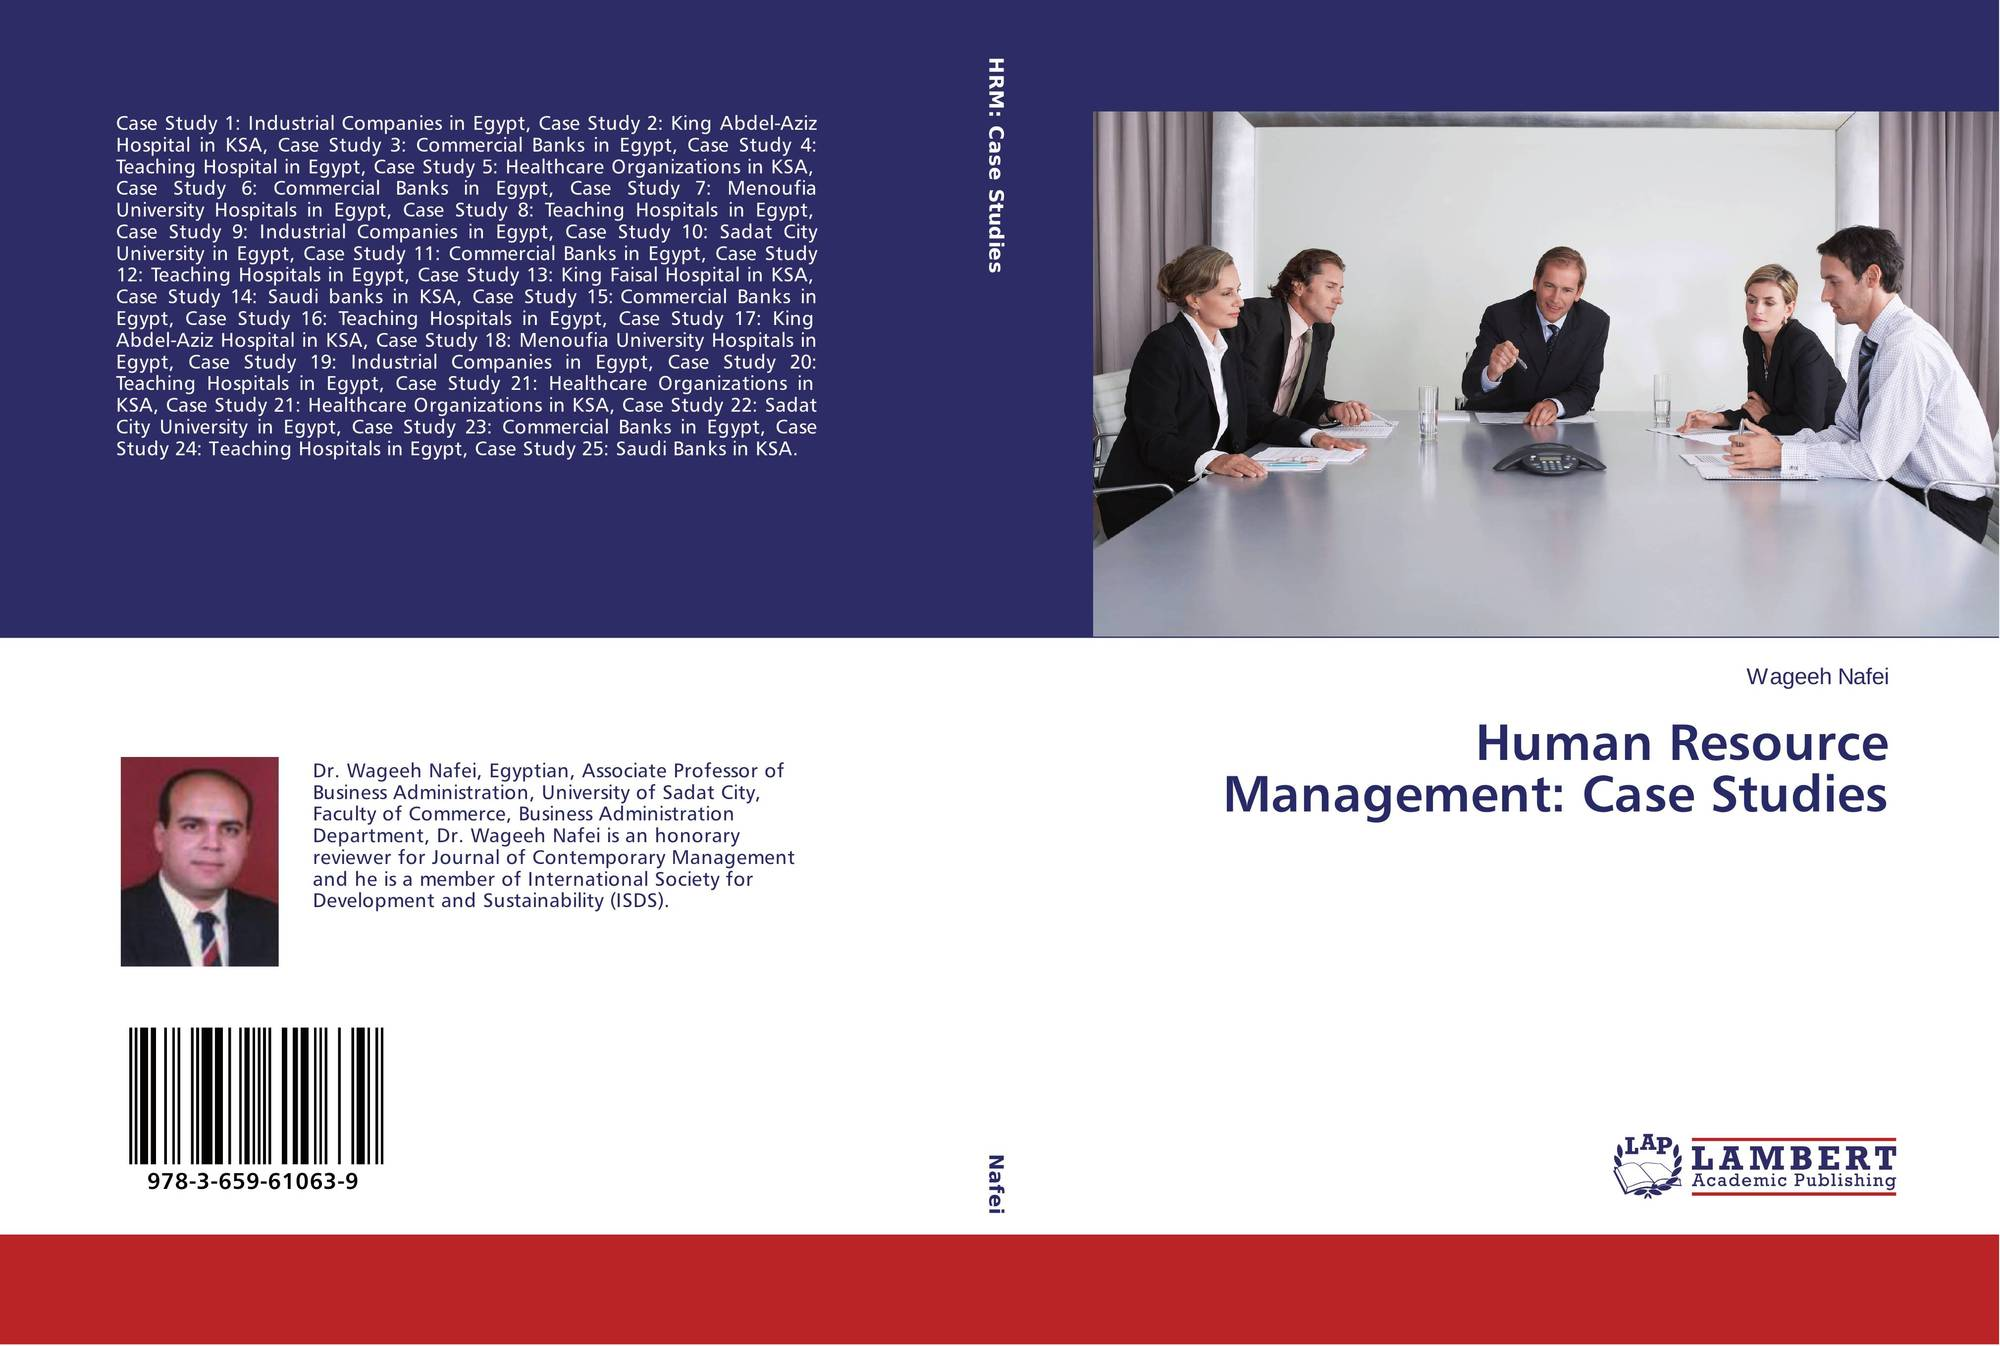 case study 1 human resources mangement A case study of erp implementation for opto-electronics industry international journal of the computer, the internet and management vol 13#1.